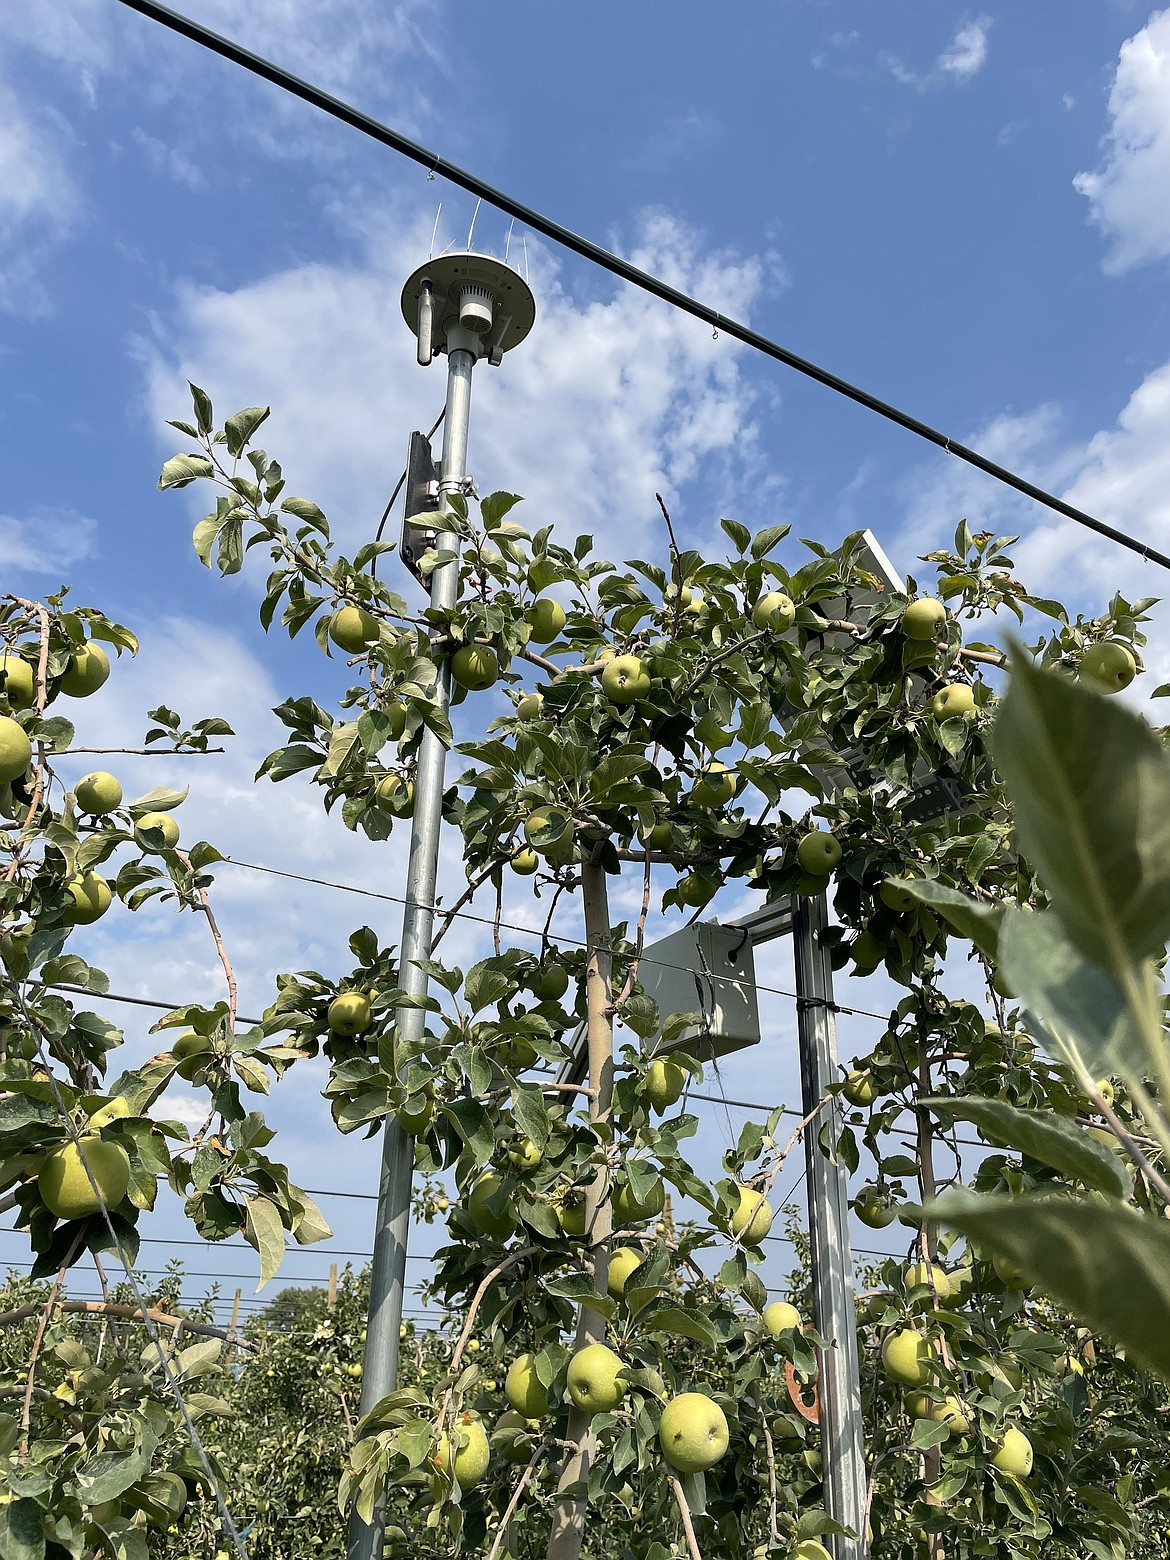 Sensors in the Smart Orchard.